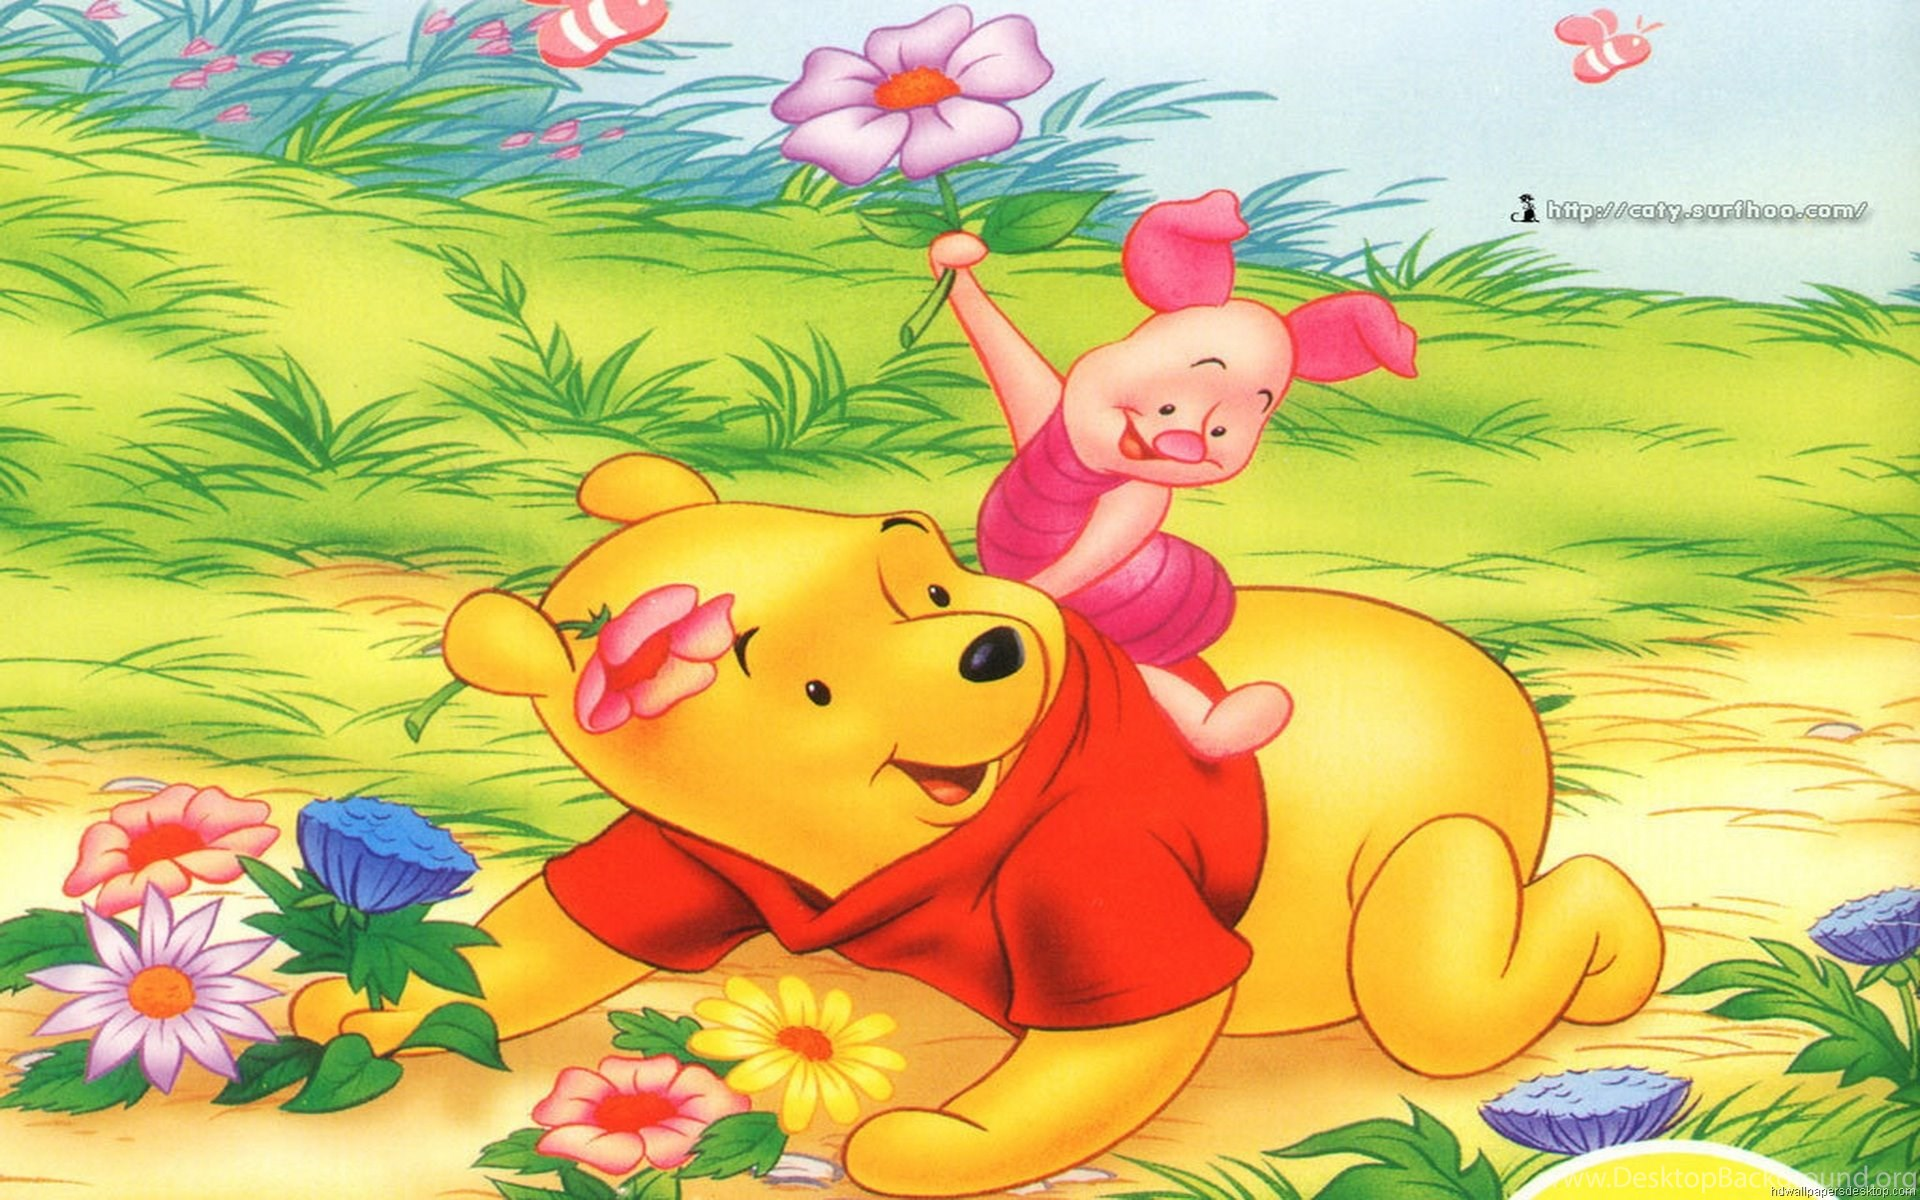 Winnie the pooh wallpapers for android best hd wallpaper android hd 540x960 360x640 source winnie the pooh vigny desktop wallpaper winnie the pooh arka free voltagebd Images